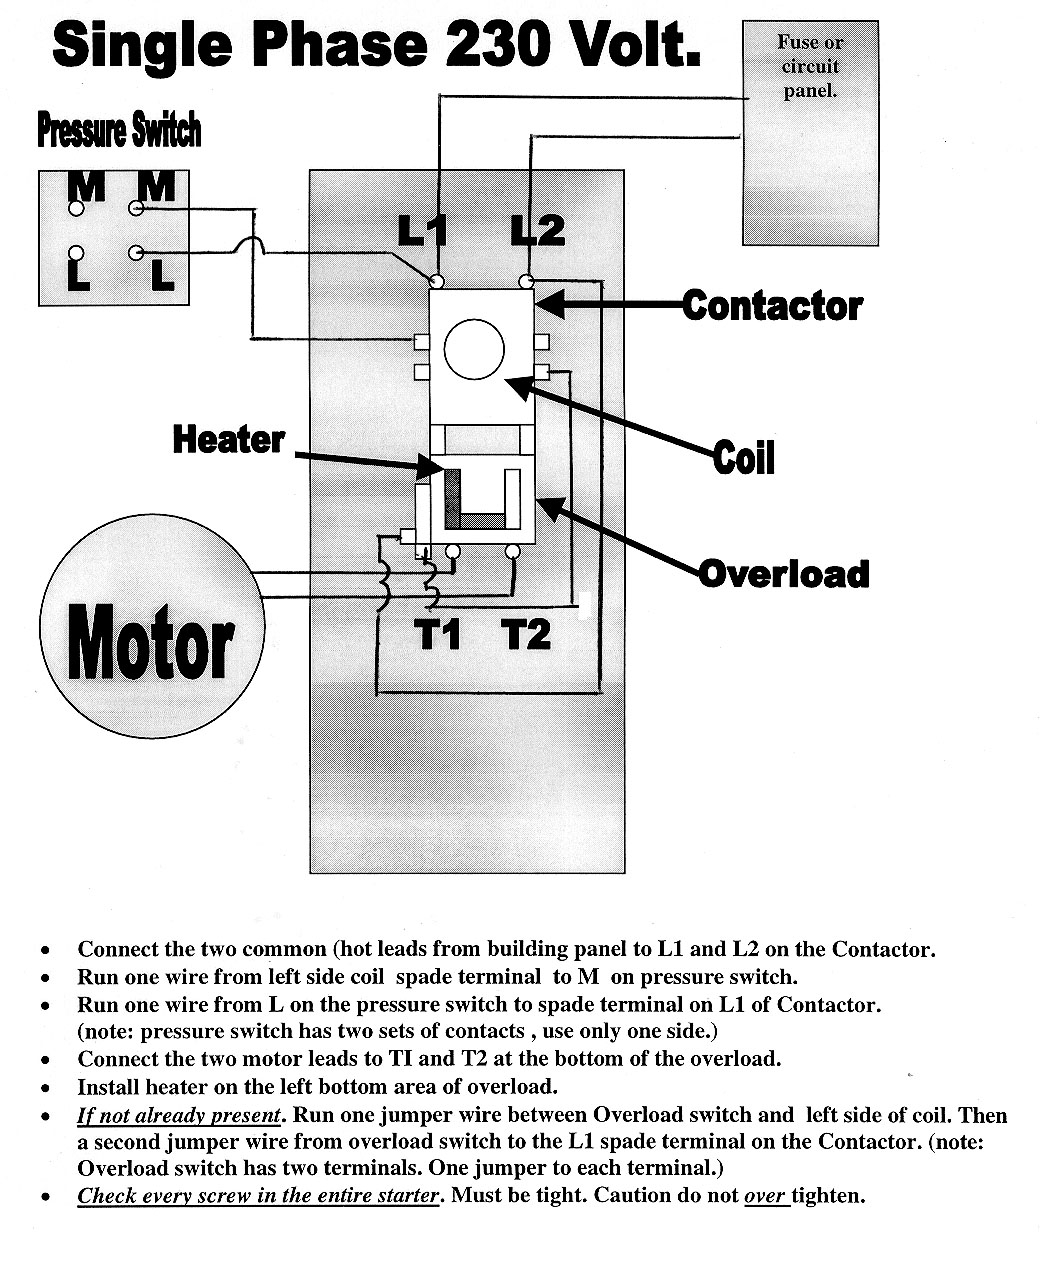 Air Compressor 240v Wiring Diagram | Manual e-books on water heater 240v wiring-diagram, air pressure switch schematic, air conditioner wiring diagrams, air conditioner capacitor 12283, 3 phase 208v wiring-diagram, air motor diagram, a c condenser wiring-diagram, air conditioner repair, air conditioning capacitor diagrams,